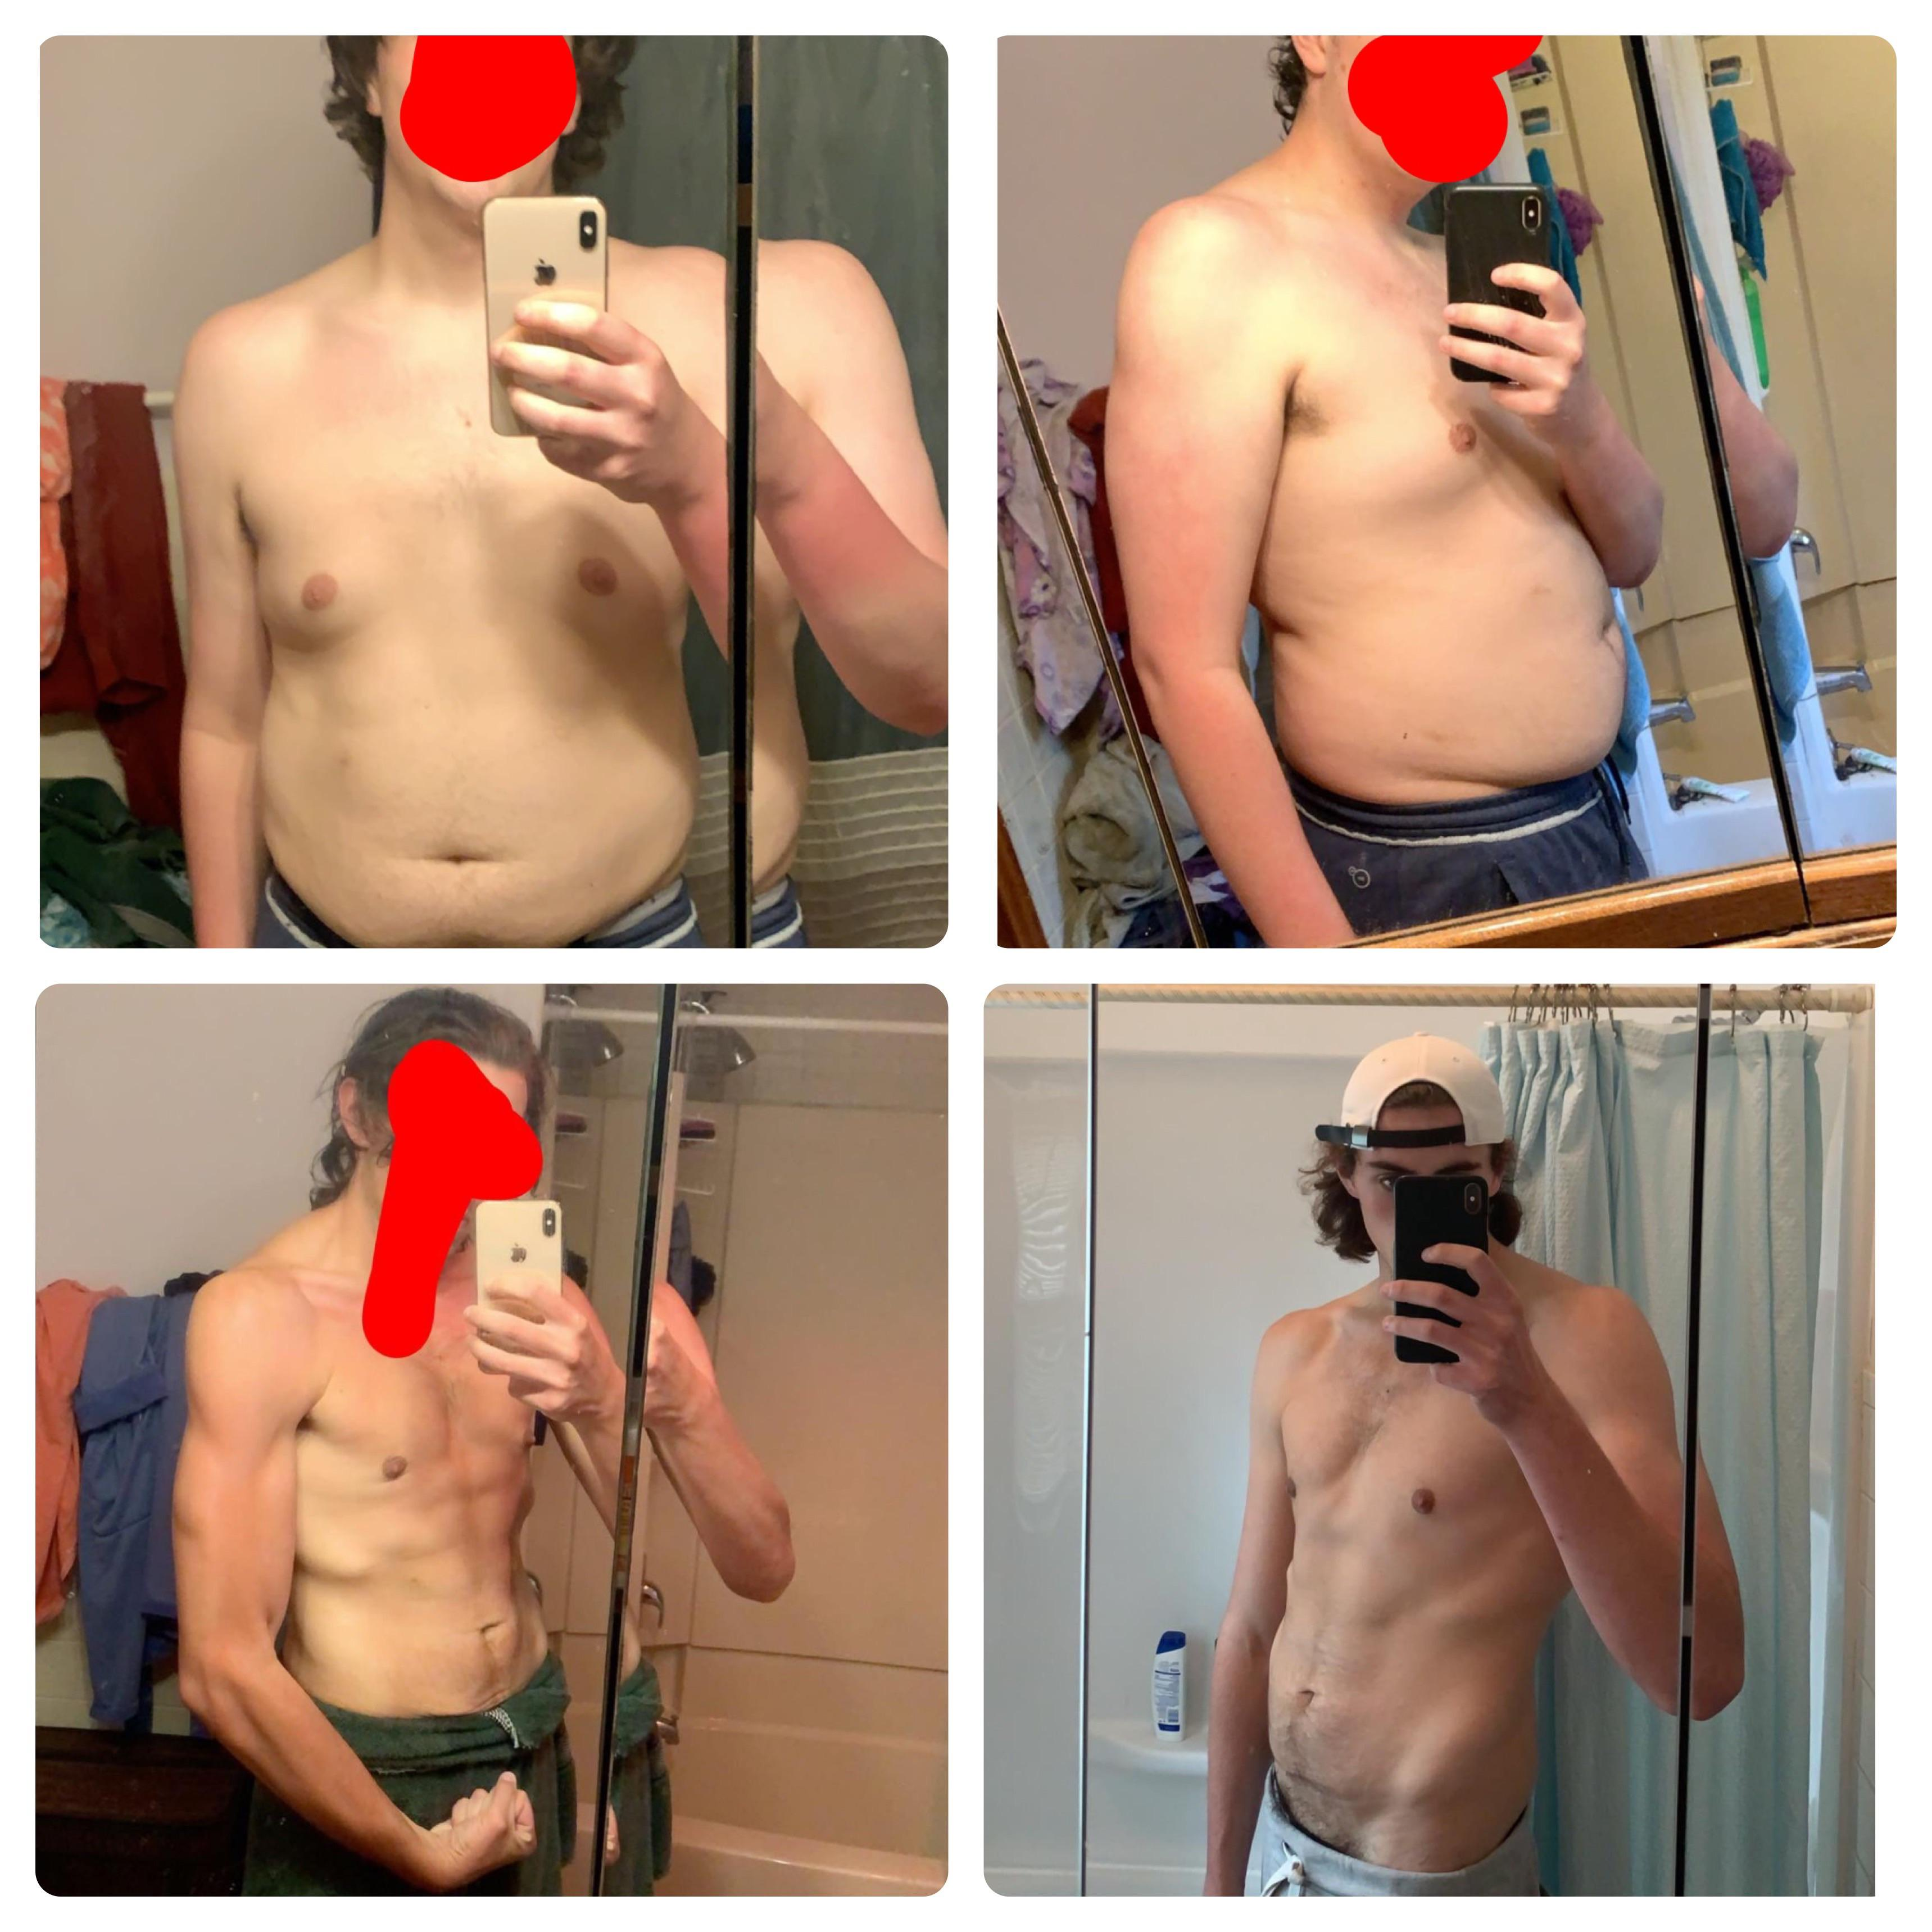 6'4 Male Before and After 140 lbs Weight Loss 320 lbs to 180 lbs